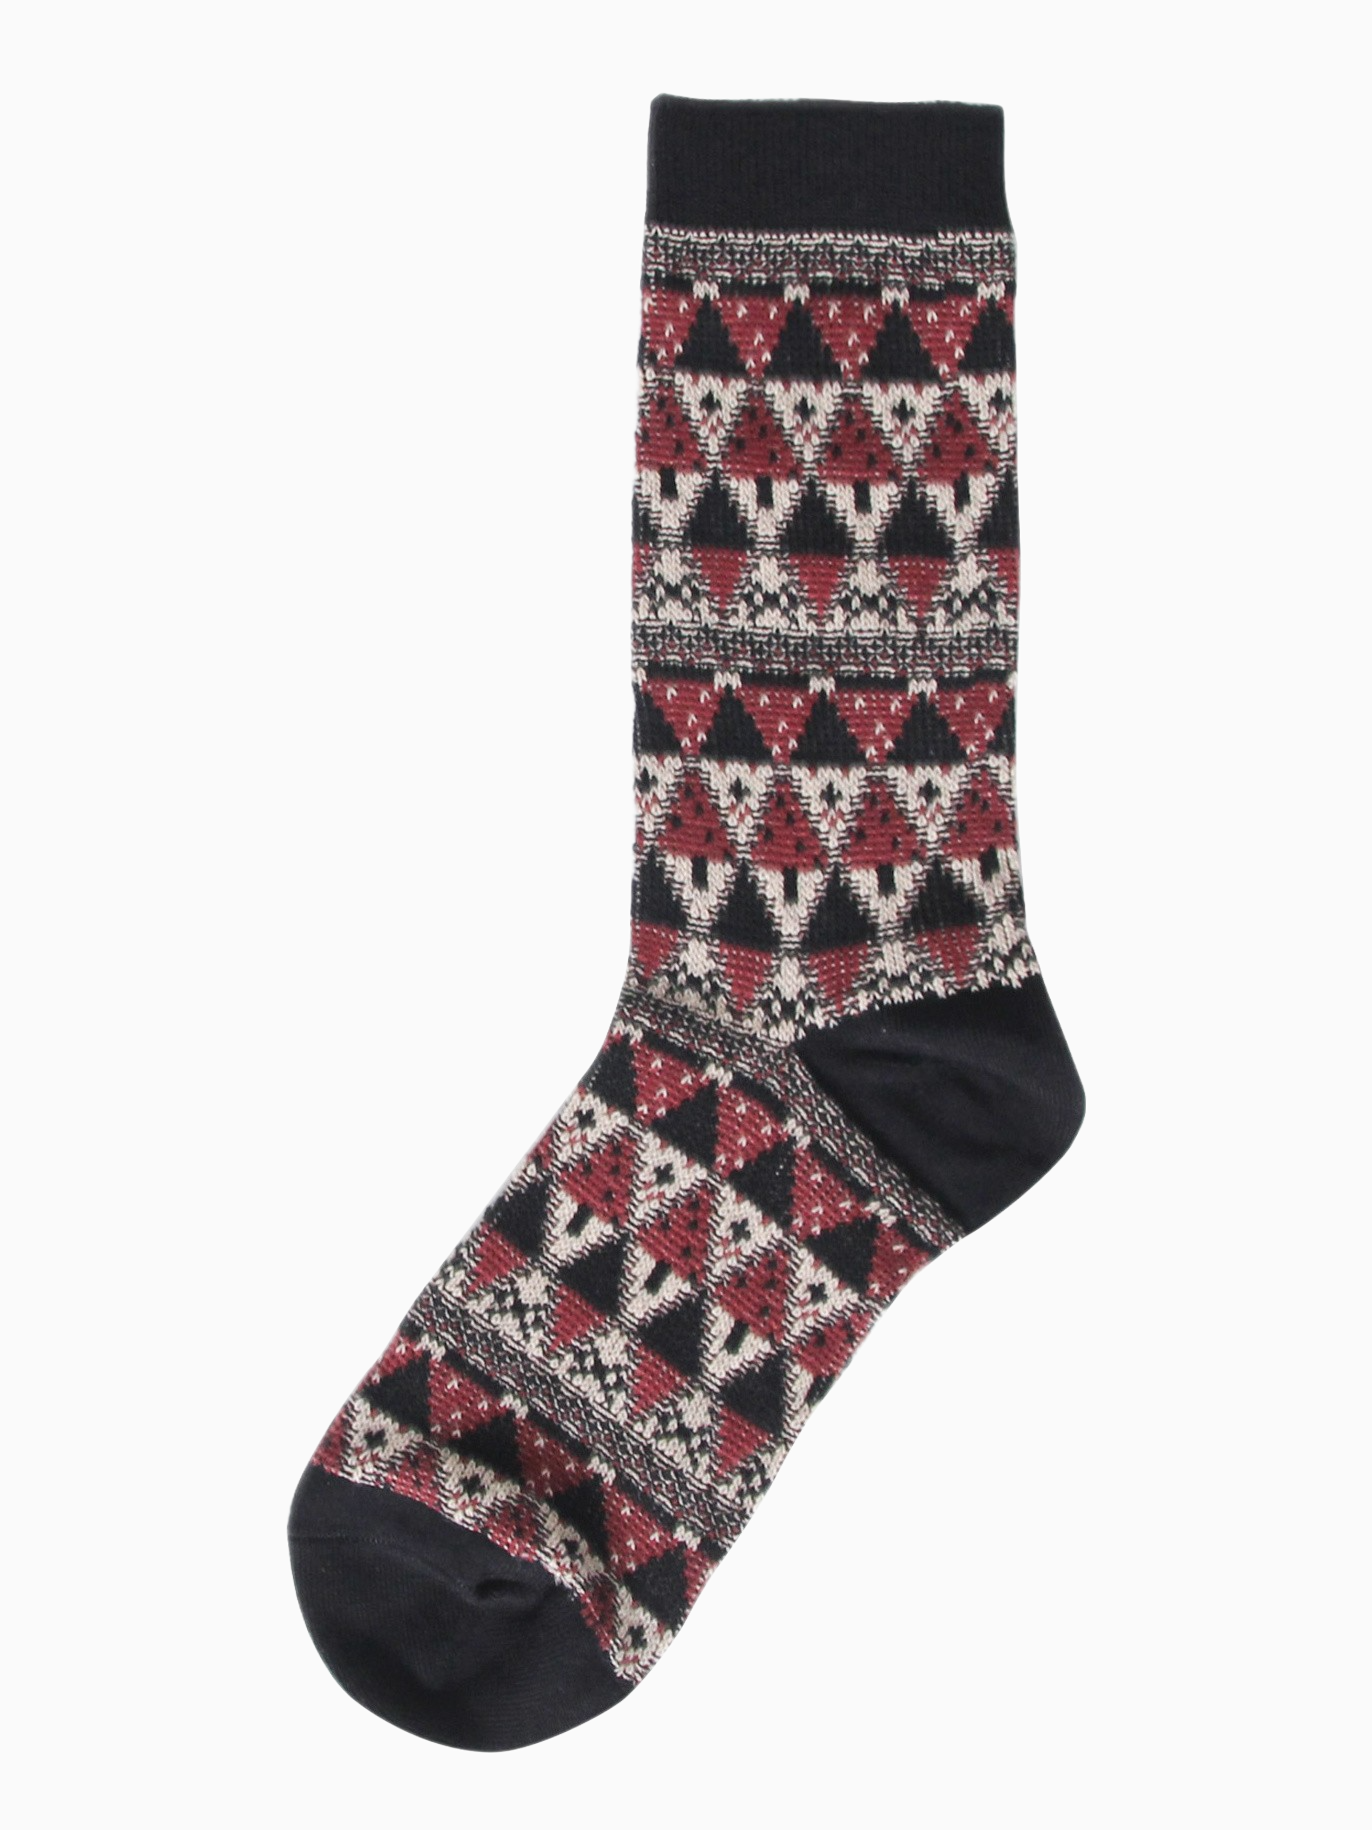 3 Pairs of Patterned Socks | Multi Pack